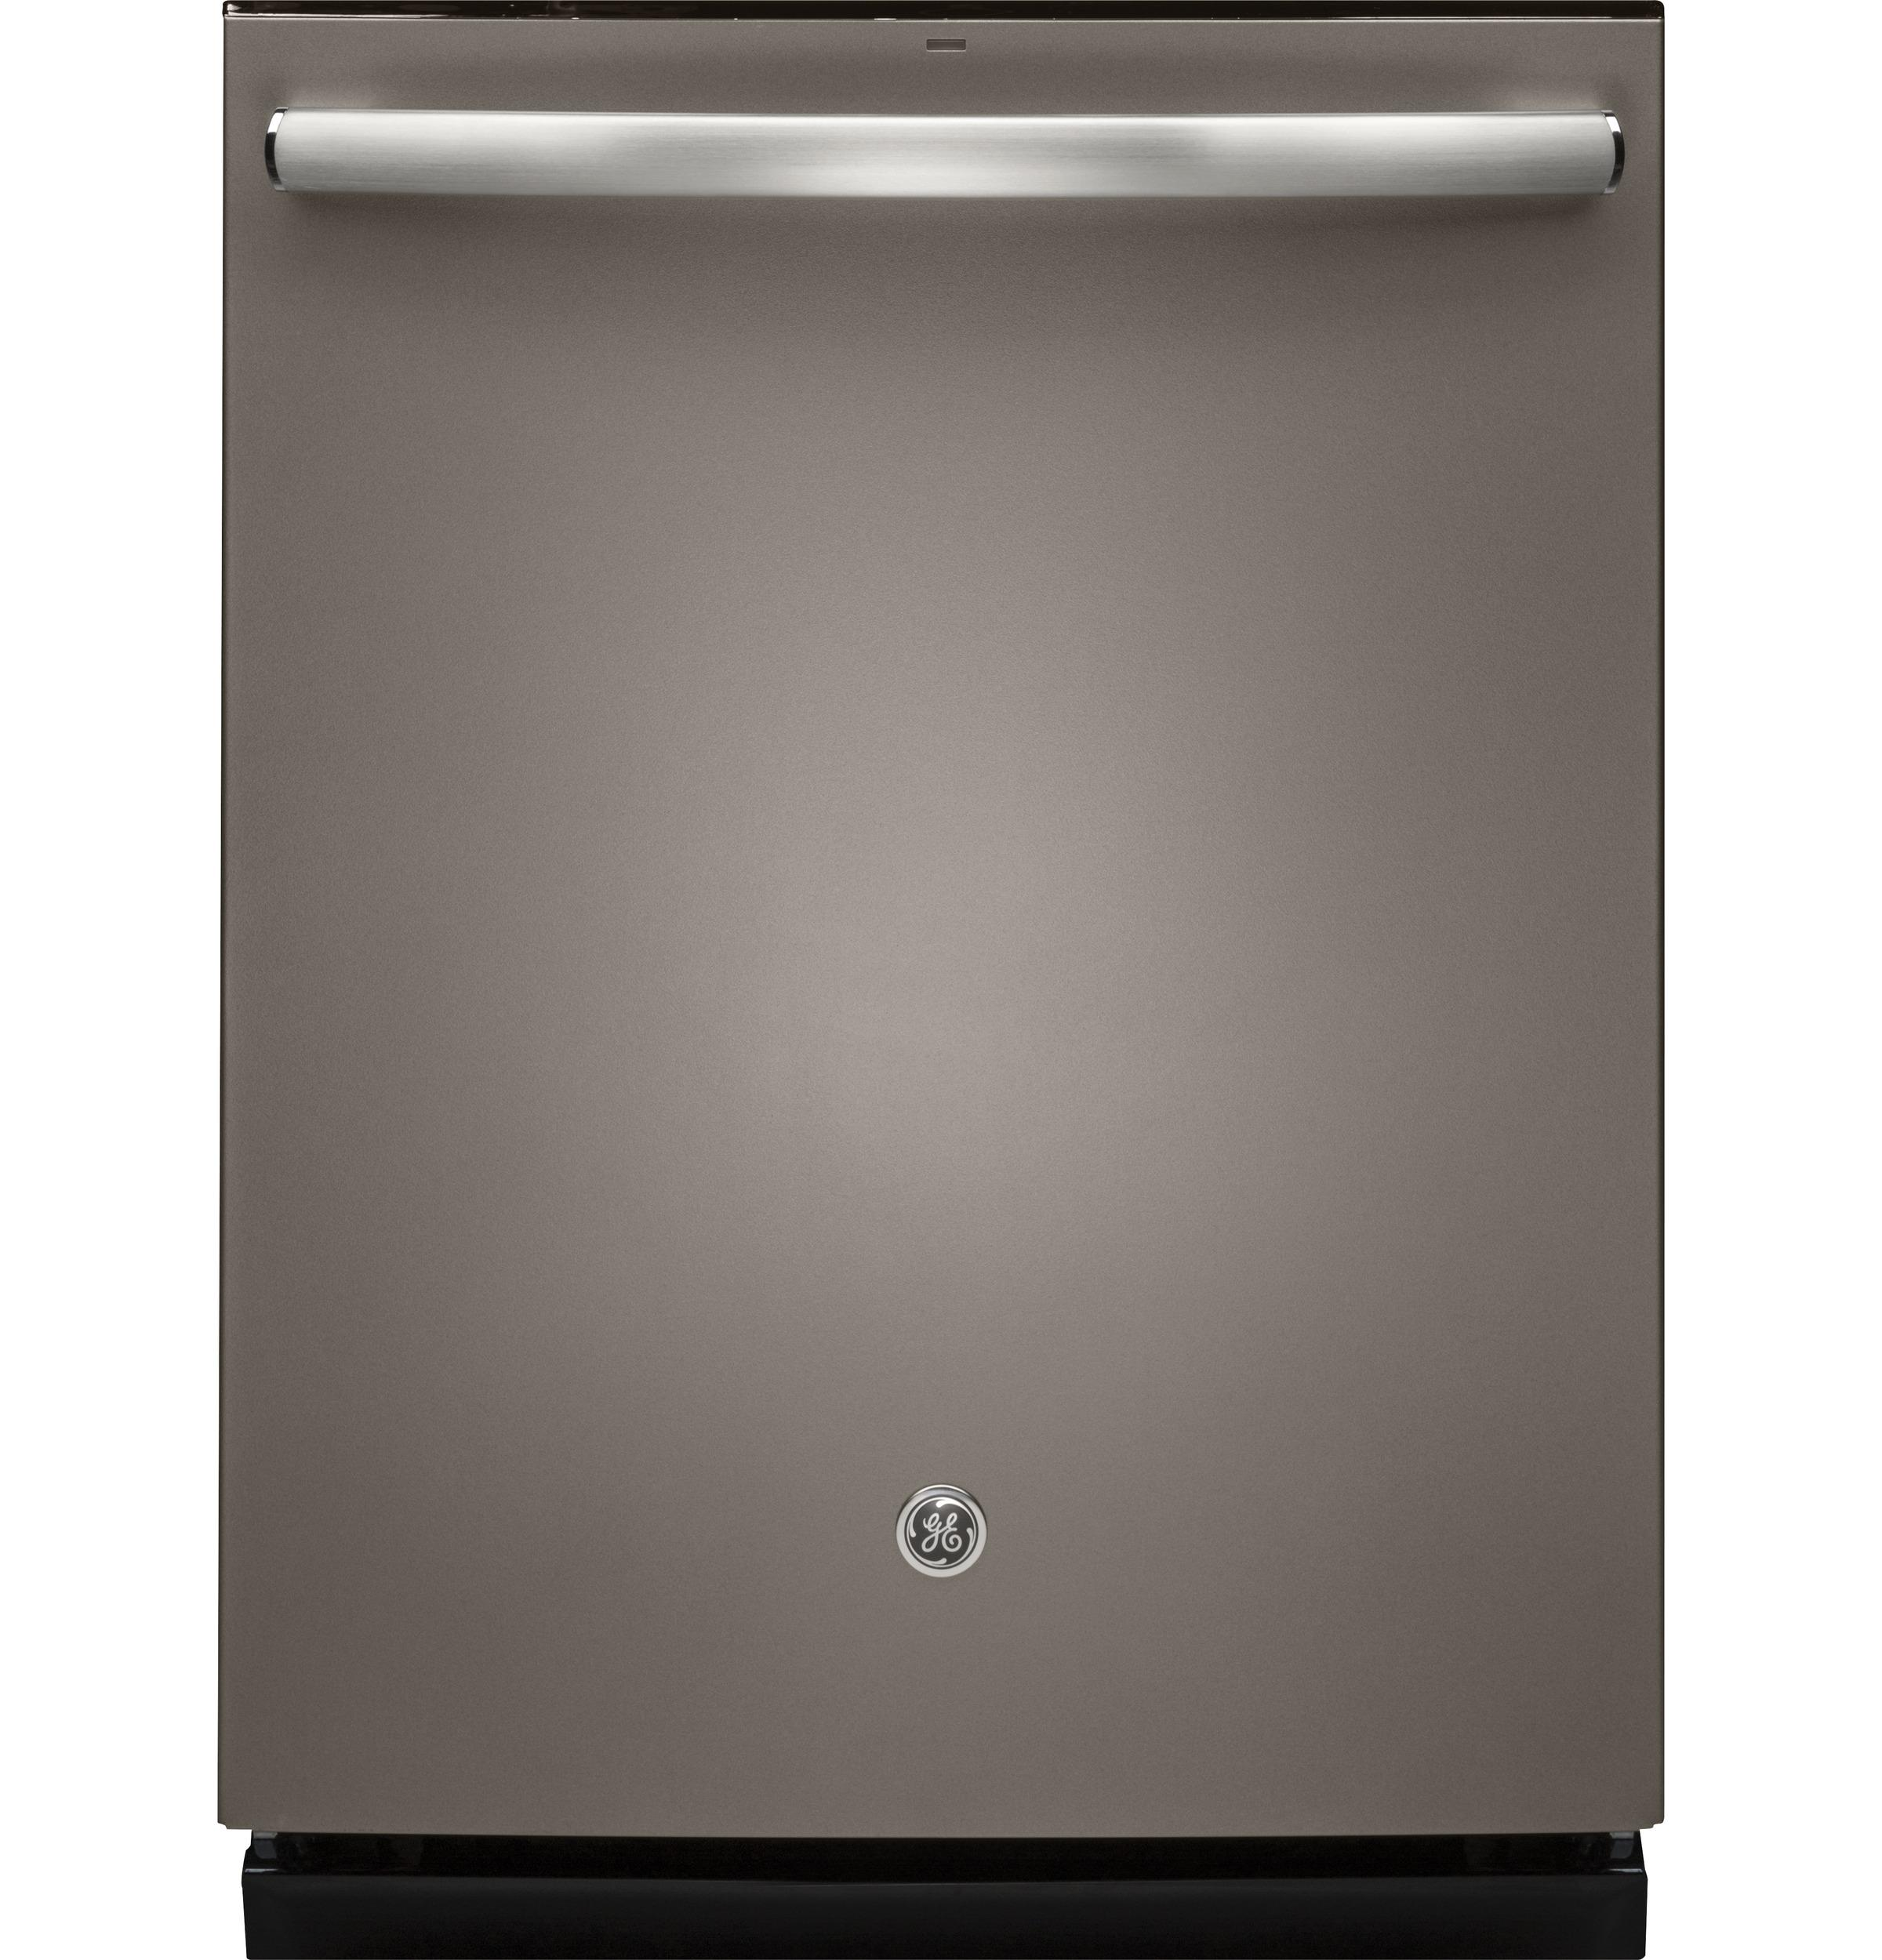 Ge Stainless Steel Interior Dishwasher With Hidden Controls Built In Dishwashers Dishwashers